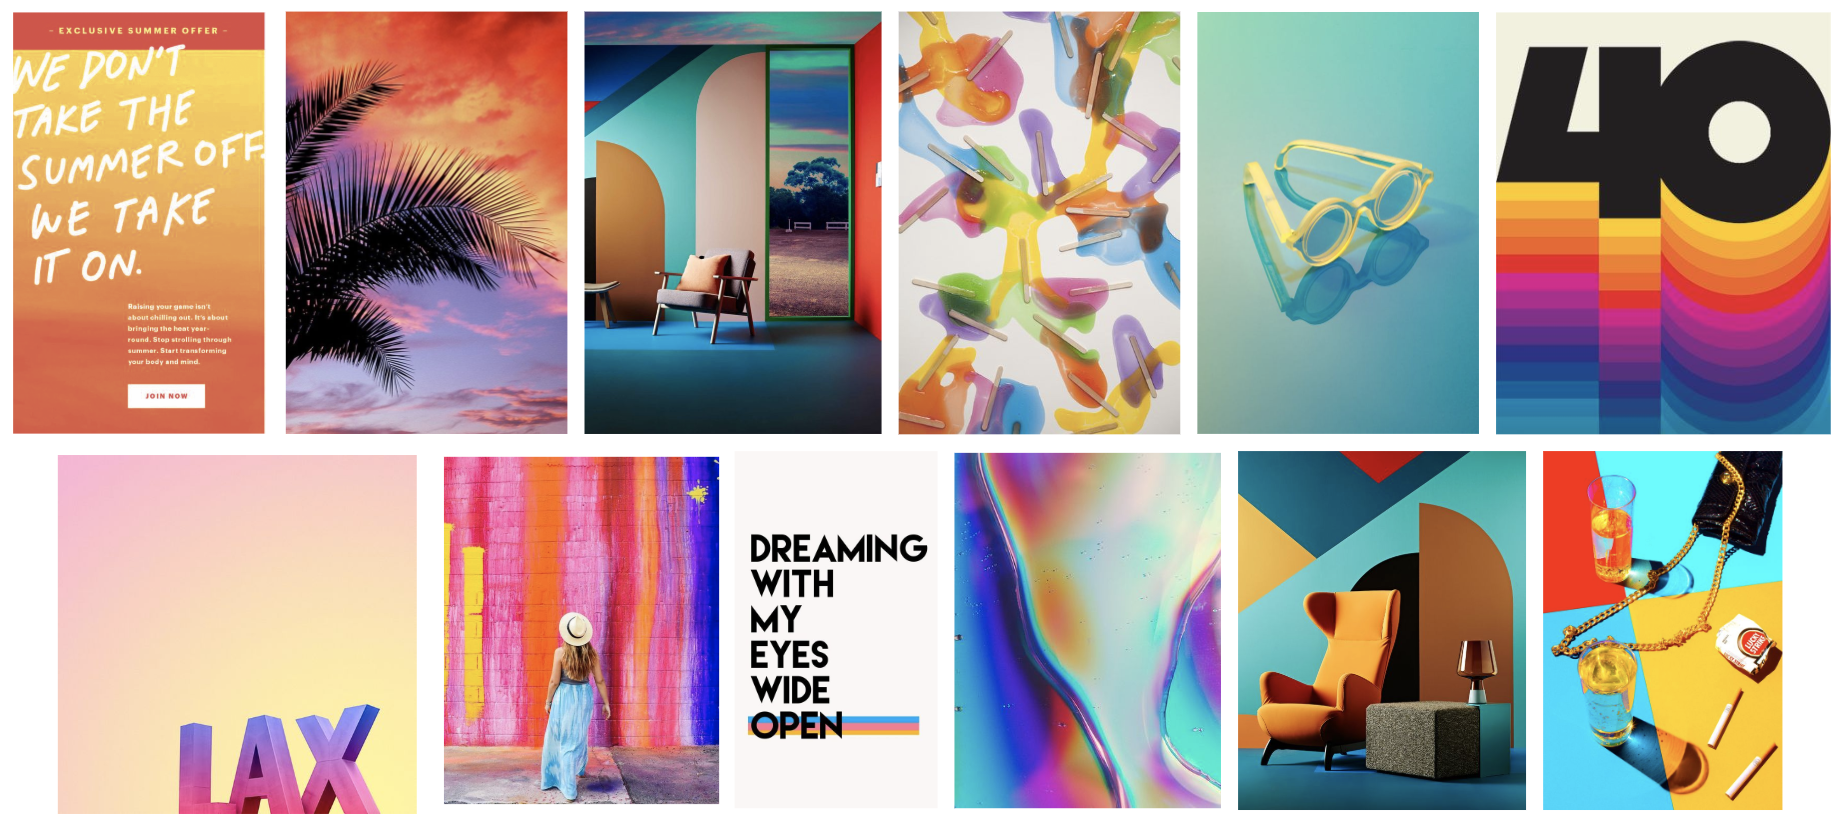 SUMMER VISUAL INSPIRATION